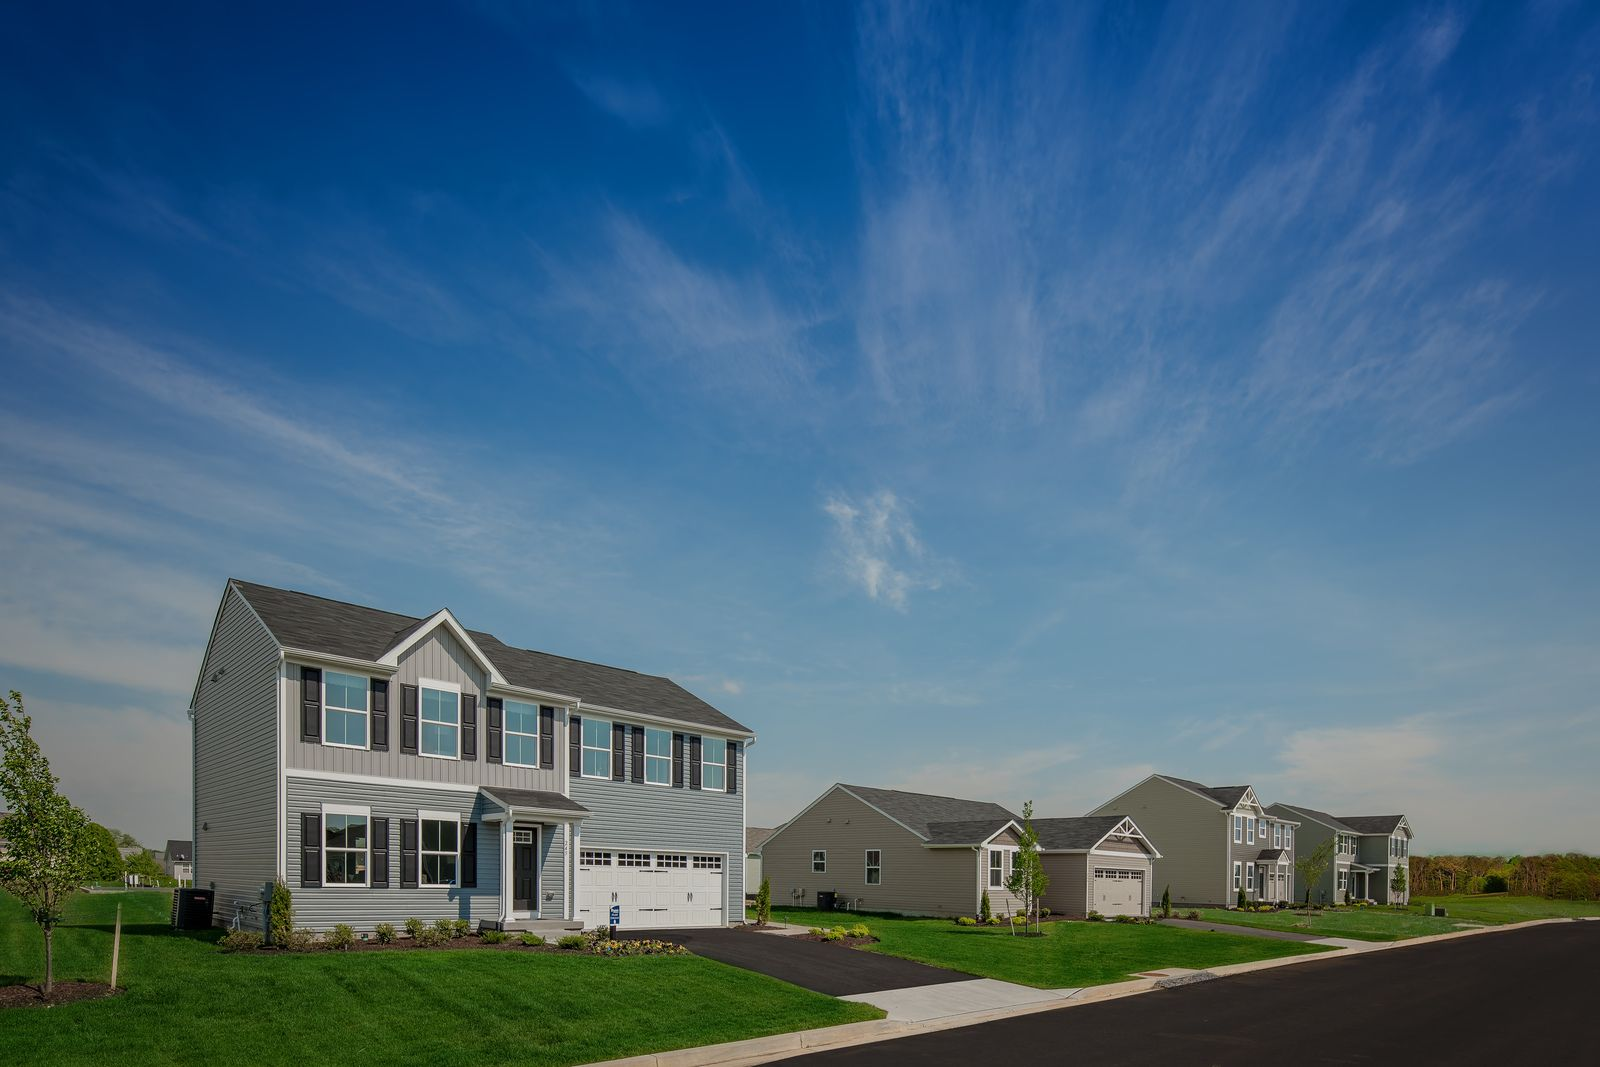 Own for Less than $1,400/Month!:Introducing new homes from the $230s. Forest Glen Trace offers the best value for new home construction in Williamsburg. Click heretovisitand receive extra savings!